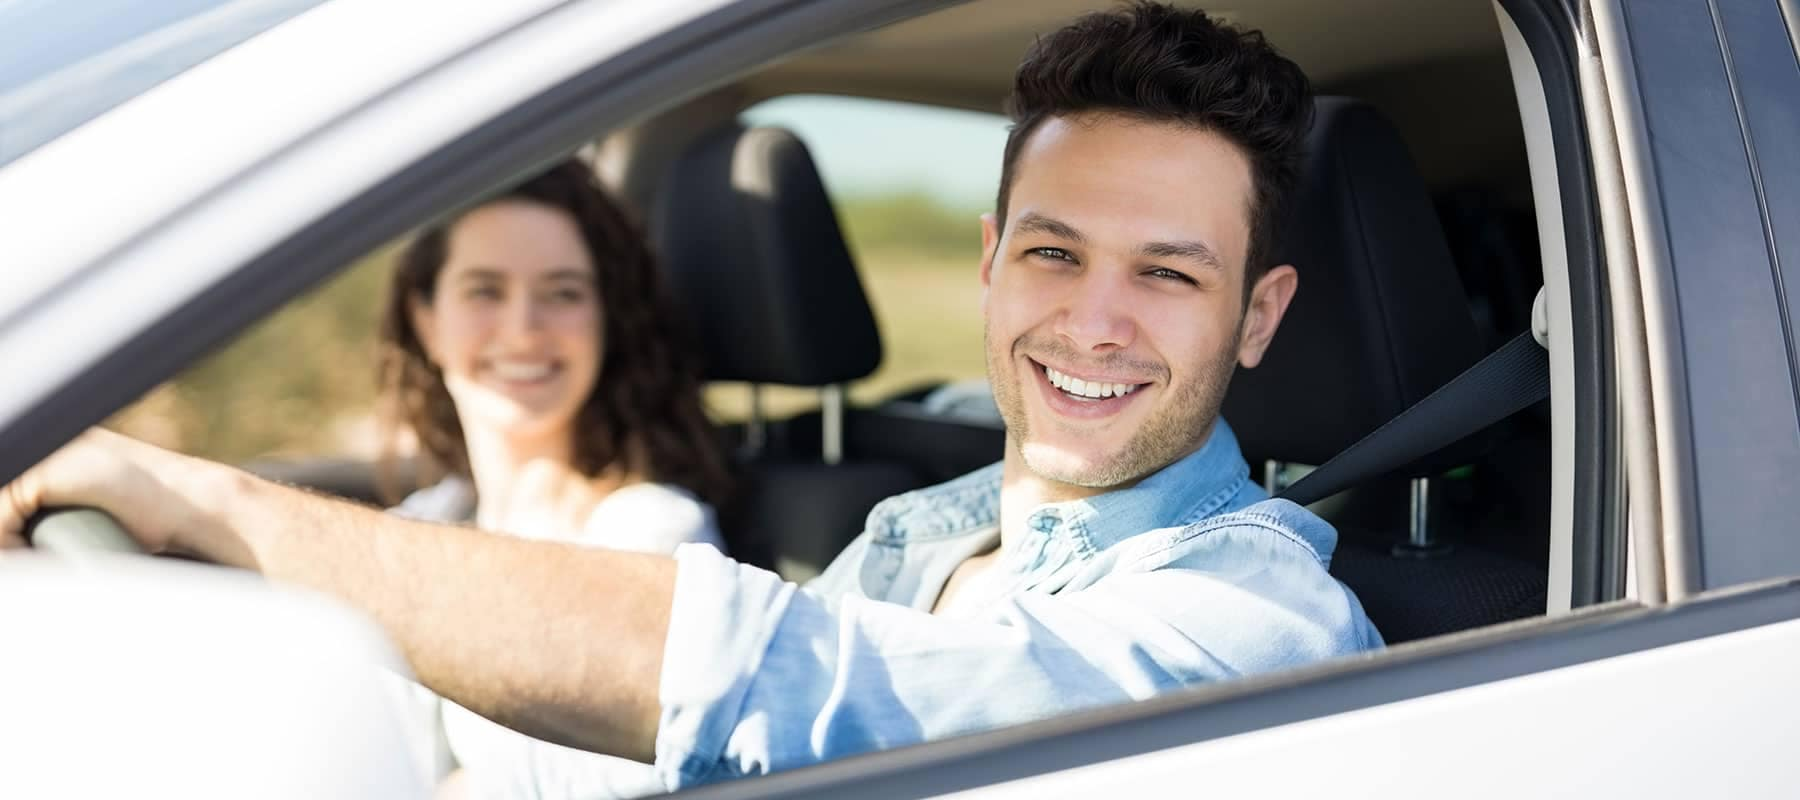 smiling man and woman in car